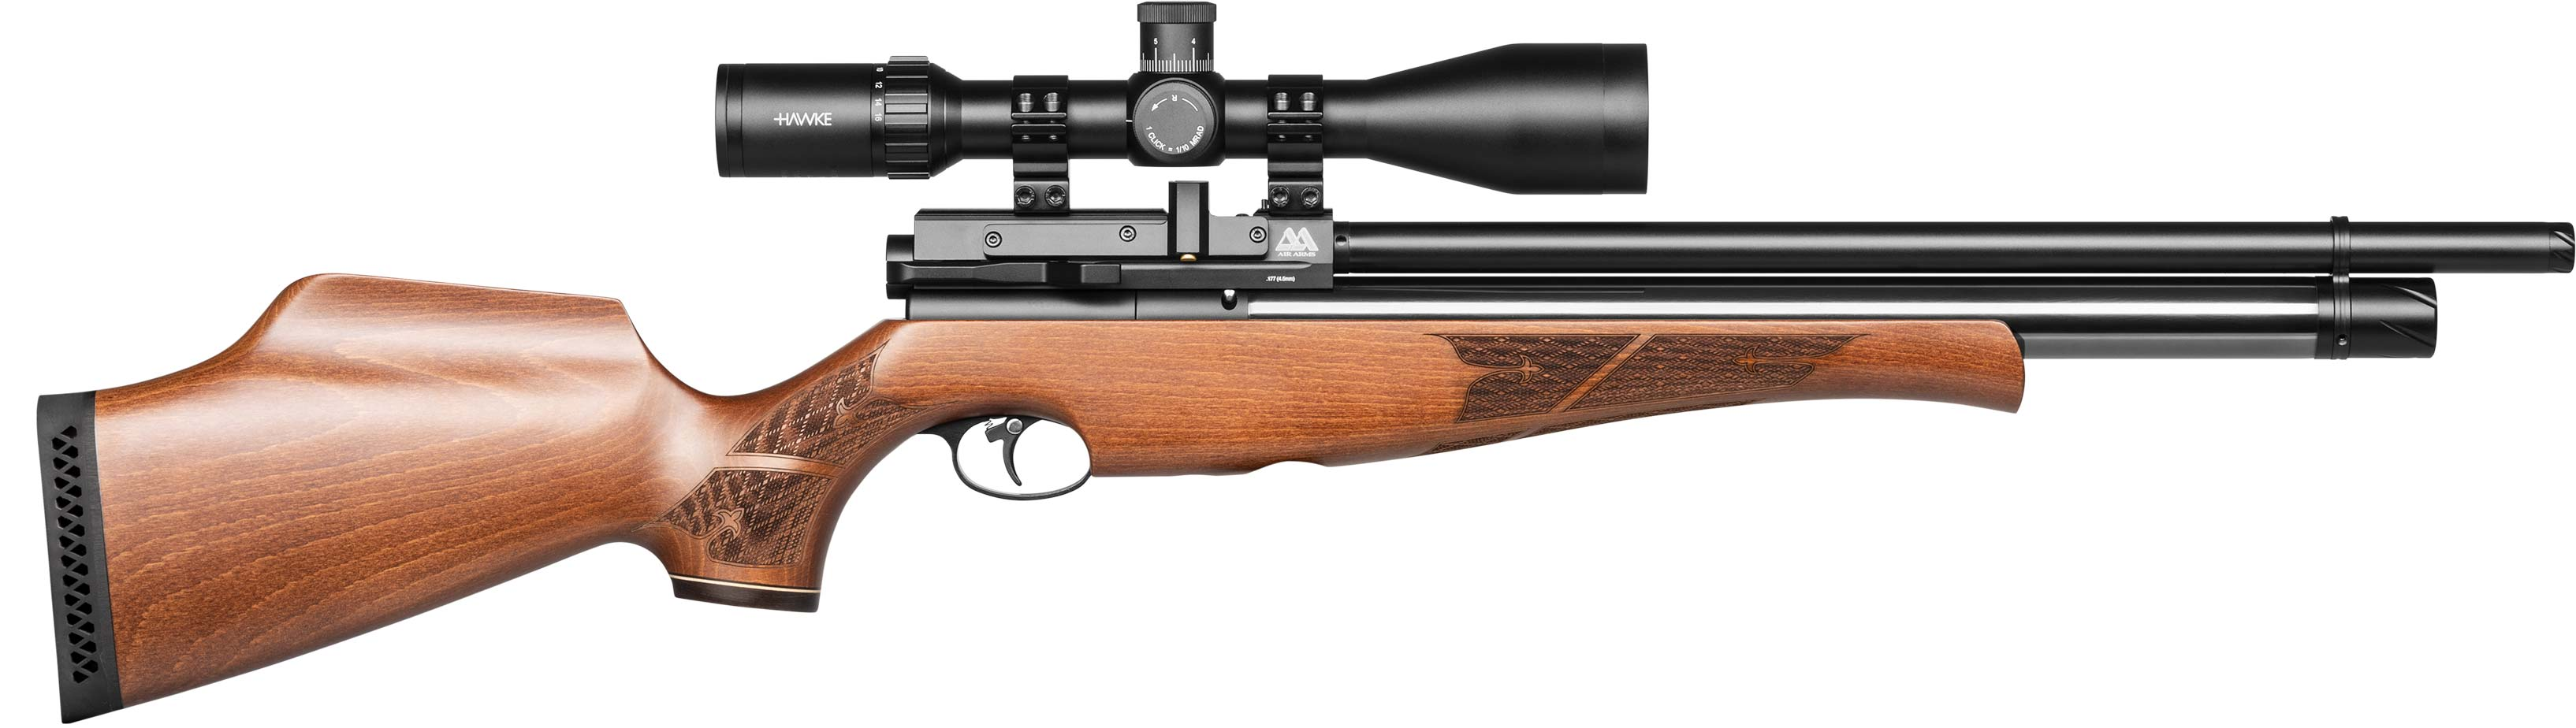 S510 Carbine - Air Rifle | Air Arms